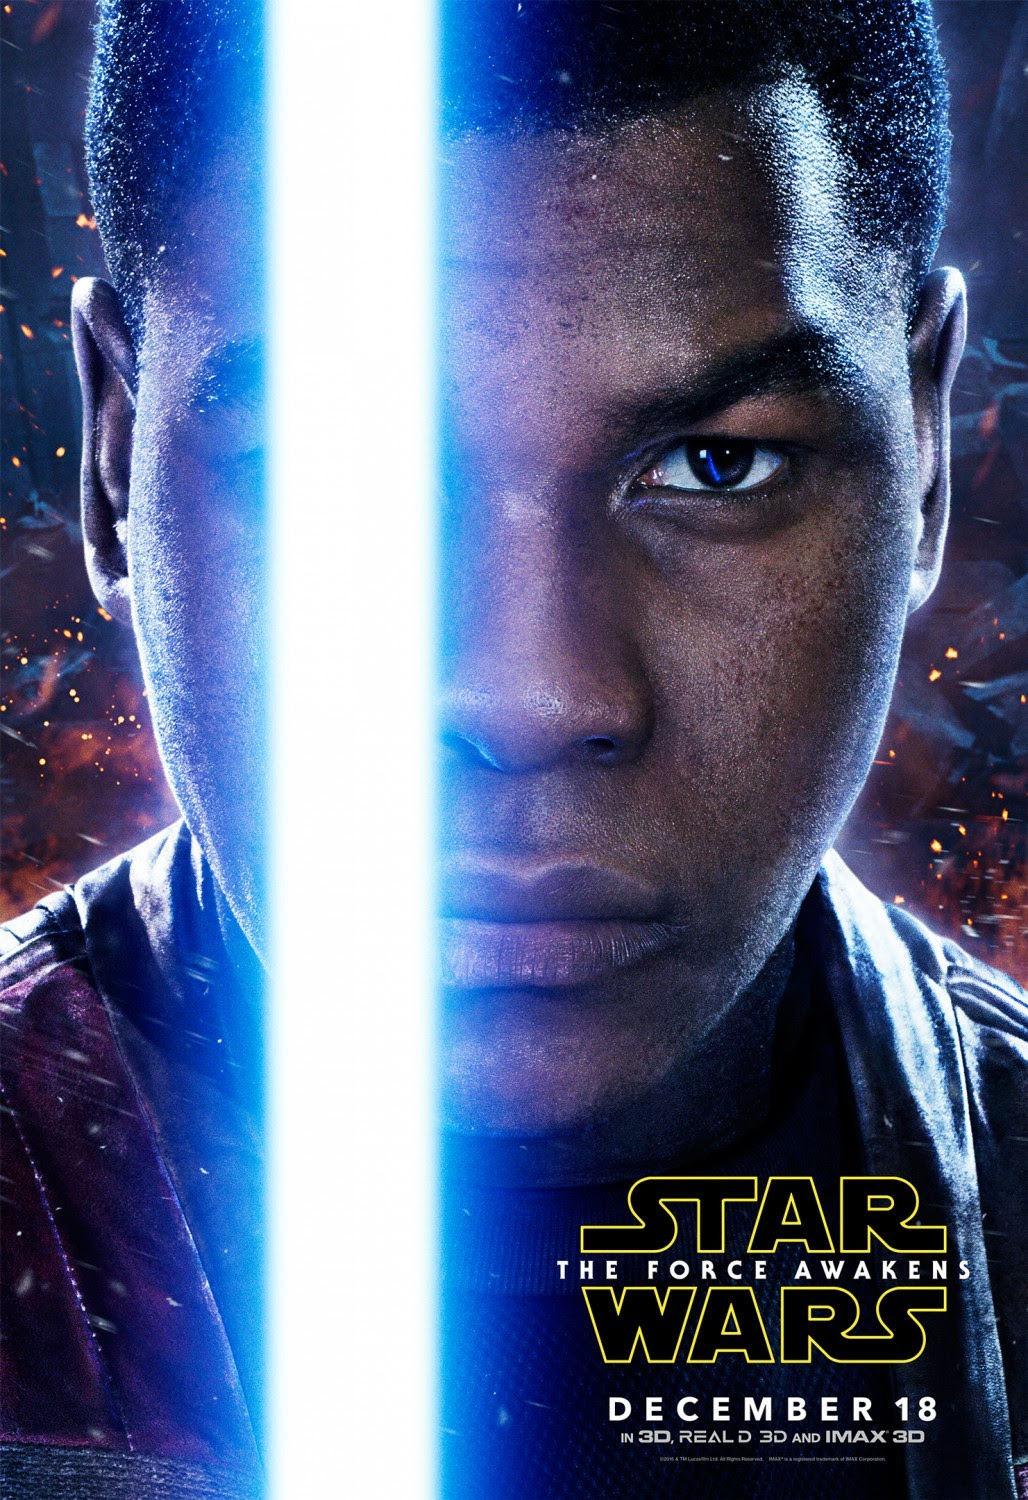 click to see more posters and previews for Star Wars: The Force Awakens